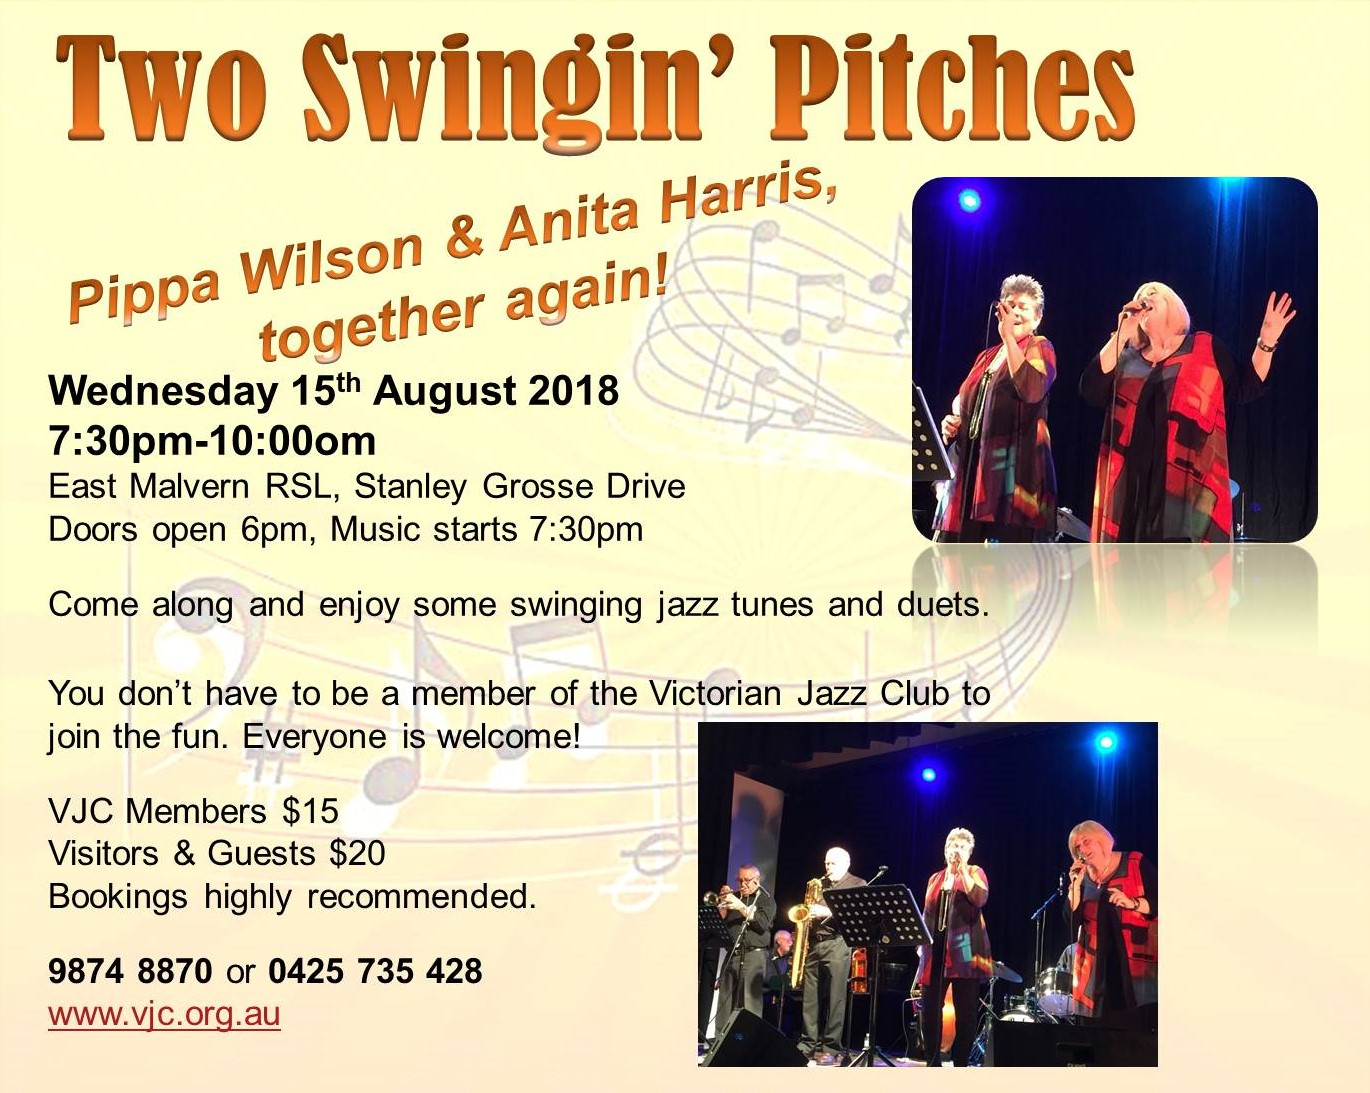 2018 Two Swingin' Pitches in August